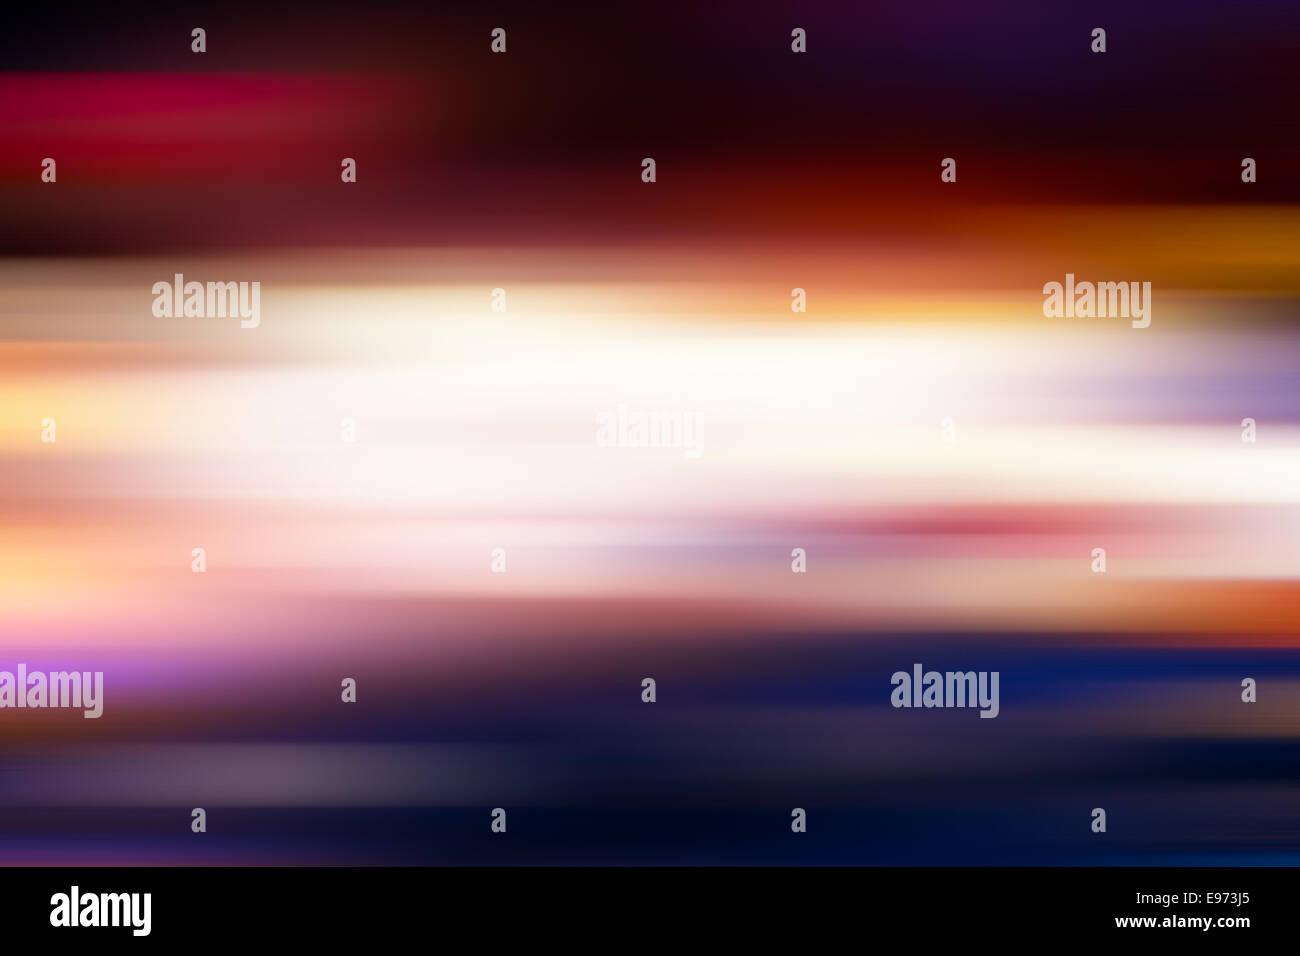 Motion blur abstract background - Stock Image